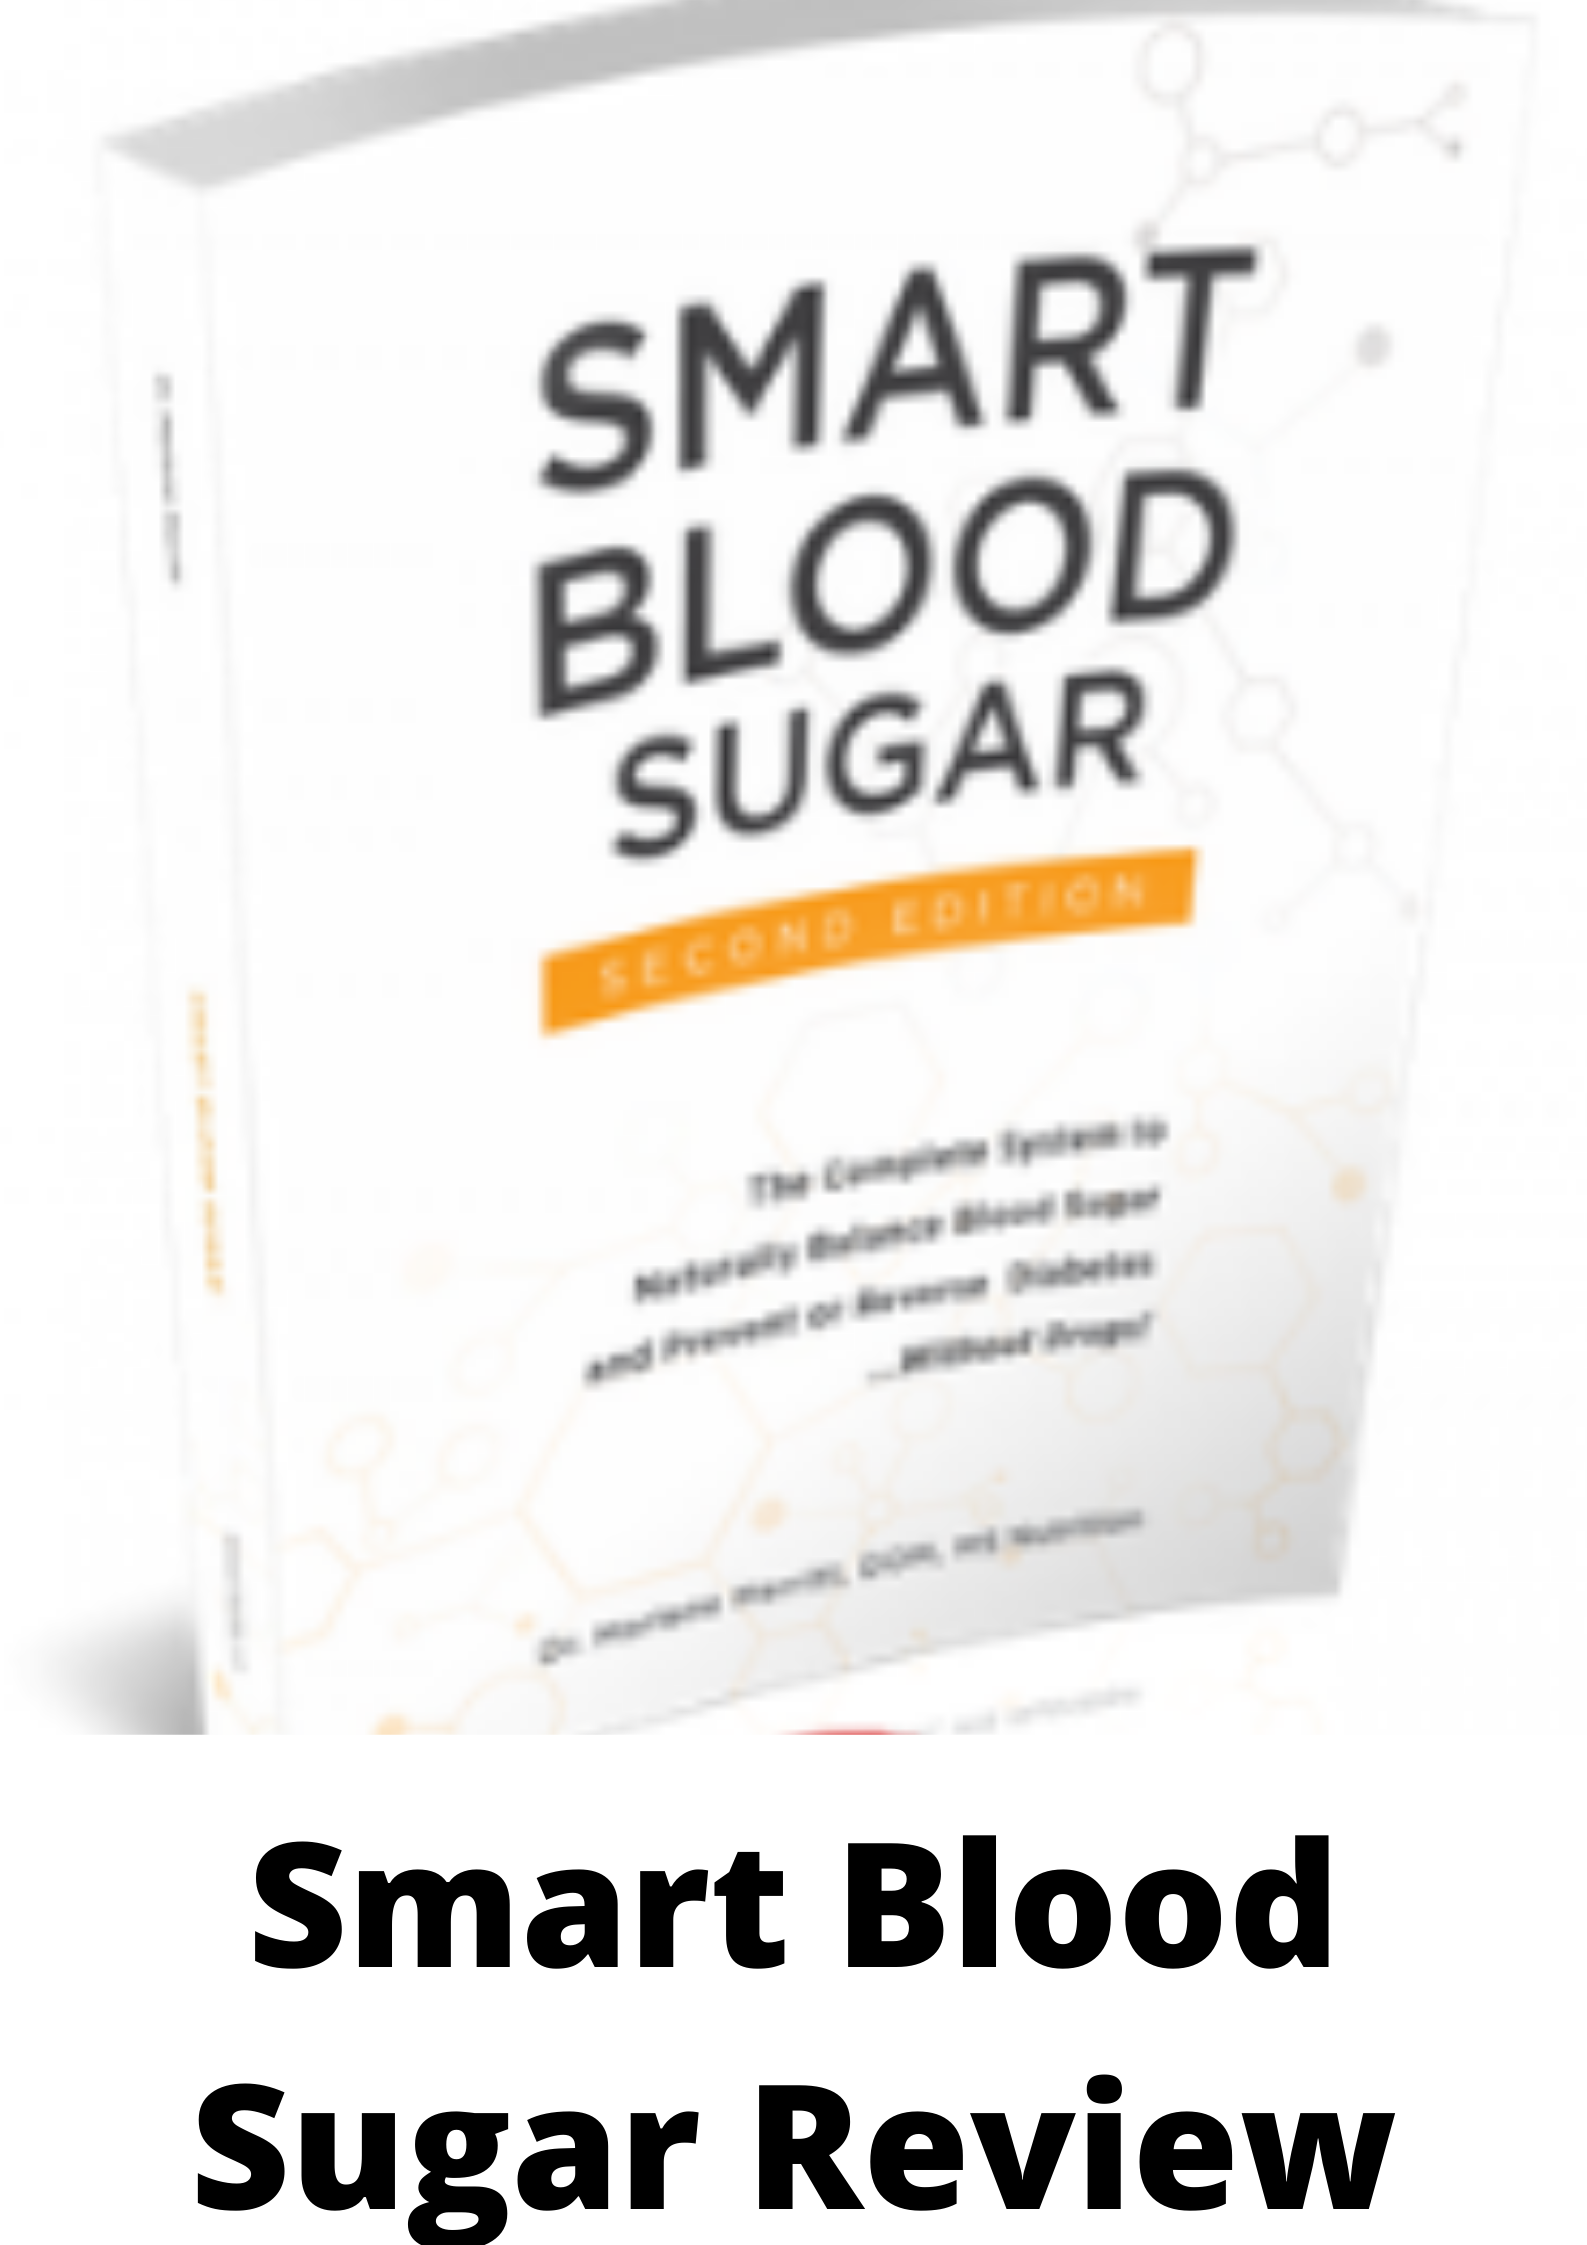 Smart Blood Sugar Review-Read this before buying